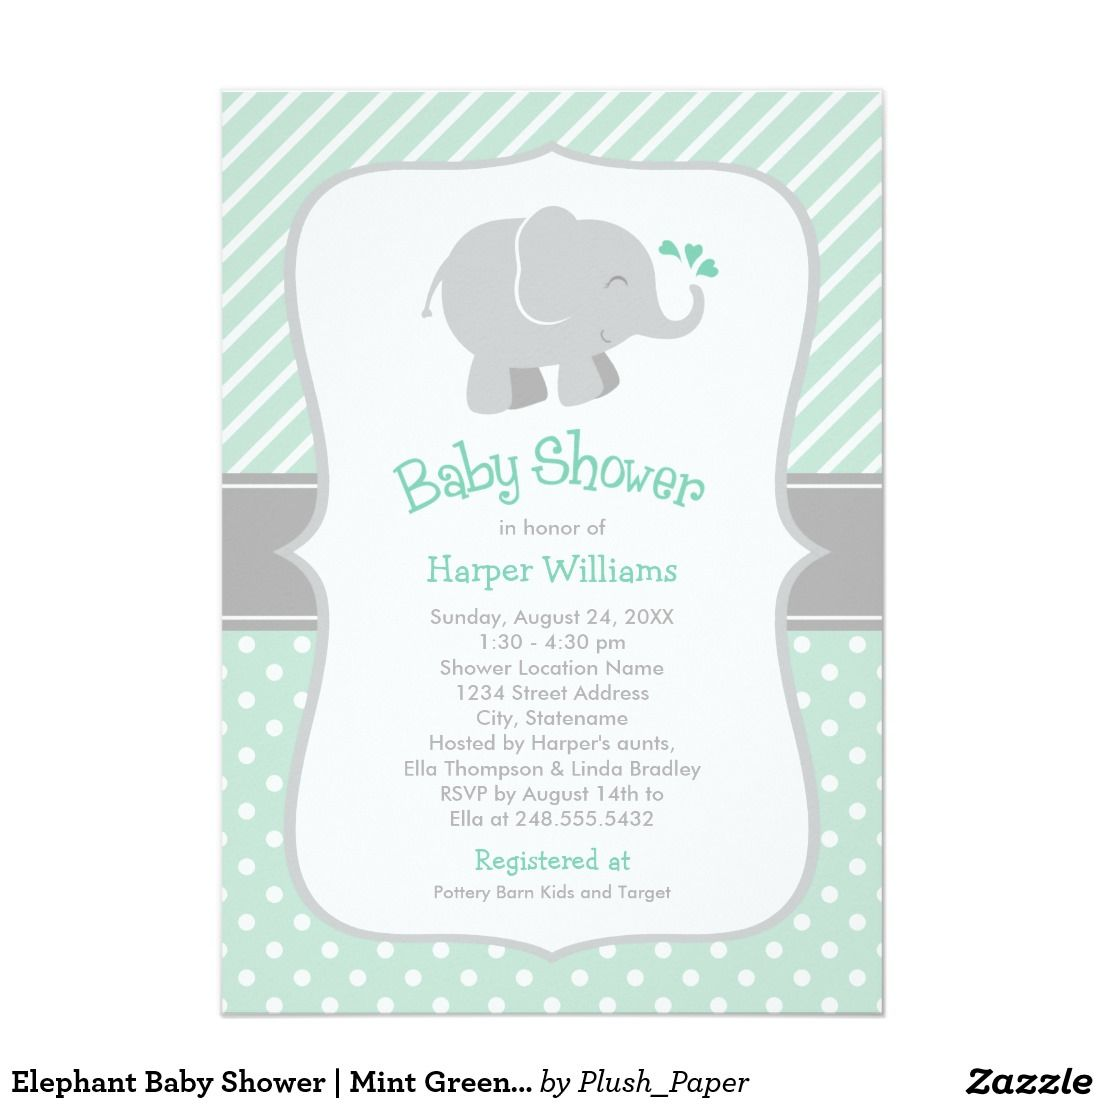 Elephant Baby Shower | Mint Green and Gray Card | Elephant baby ...